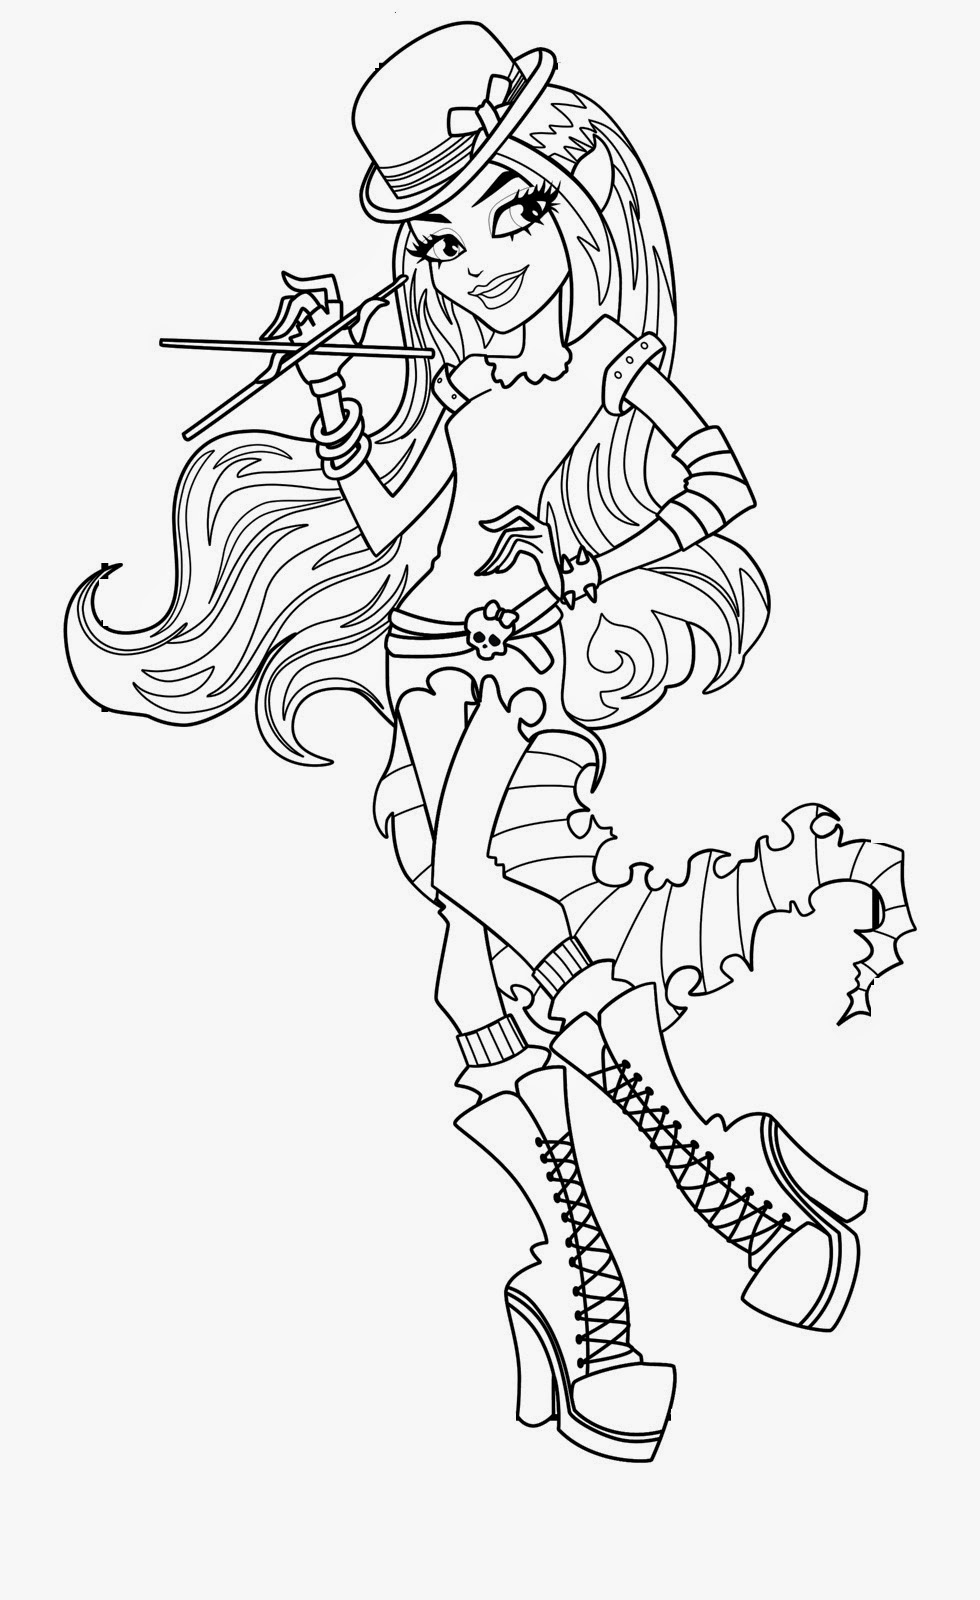 monster high free printable coloring pages free printable monster high coloring pages coloring pages pages high free printable monster coloring